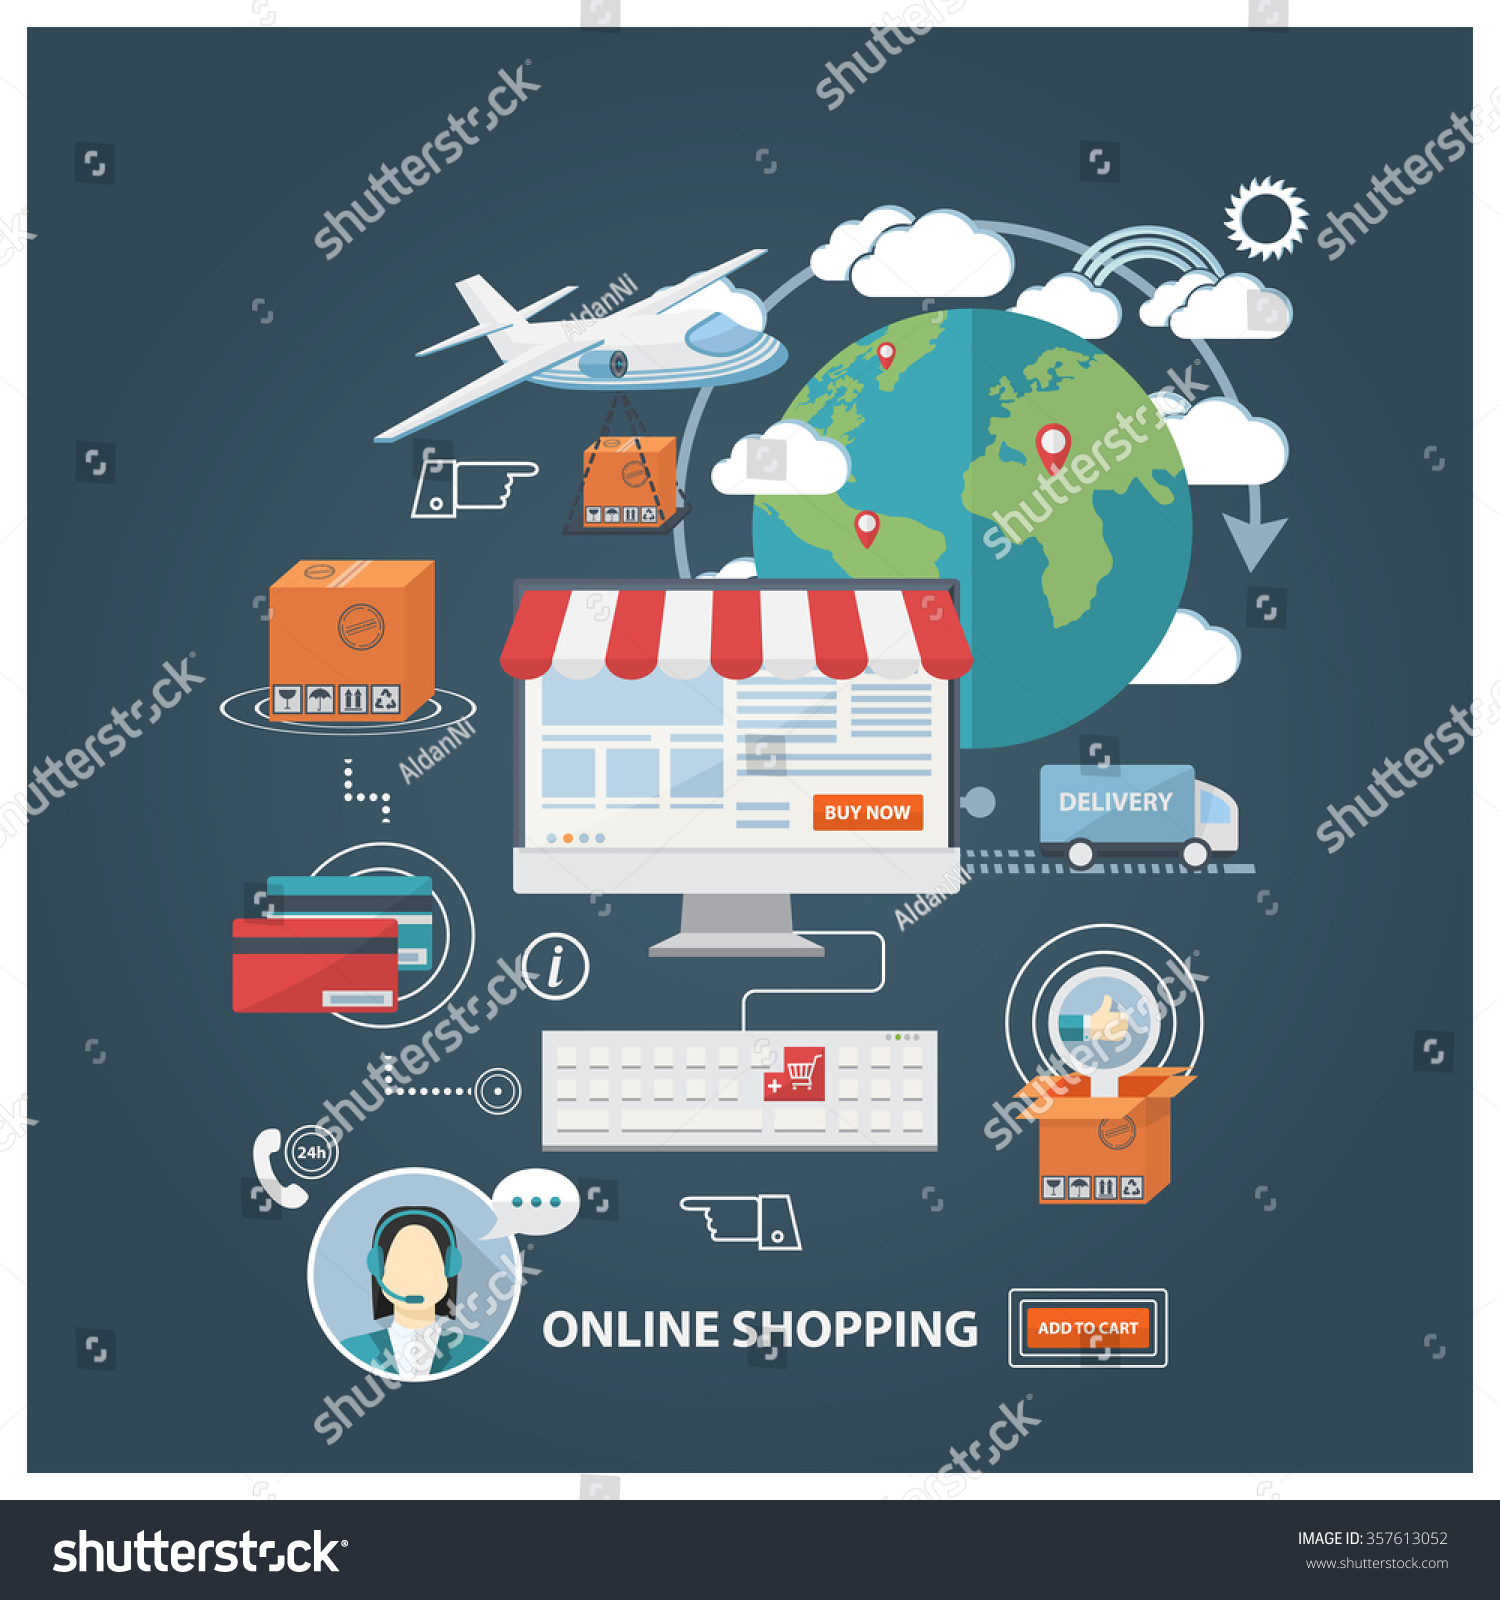 Poster Online Kaufen Flat Vector Design Shopping Conceptbuying Online Stock Vector (royalty Free) 357613052